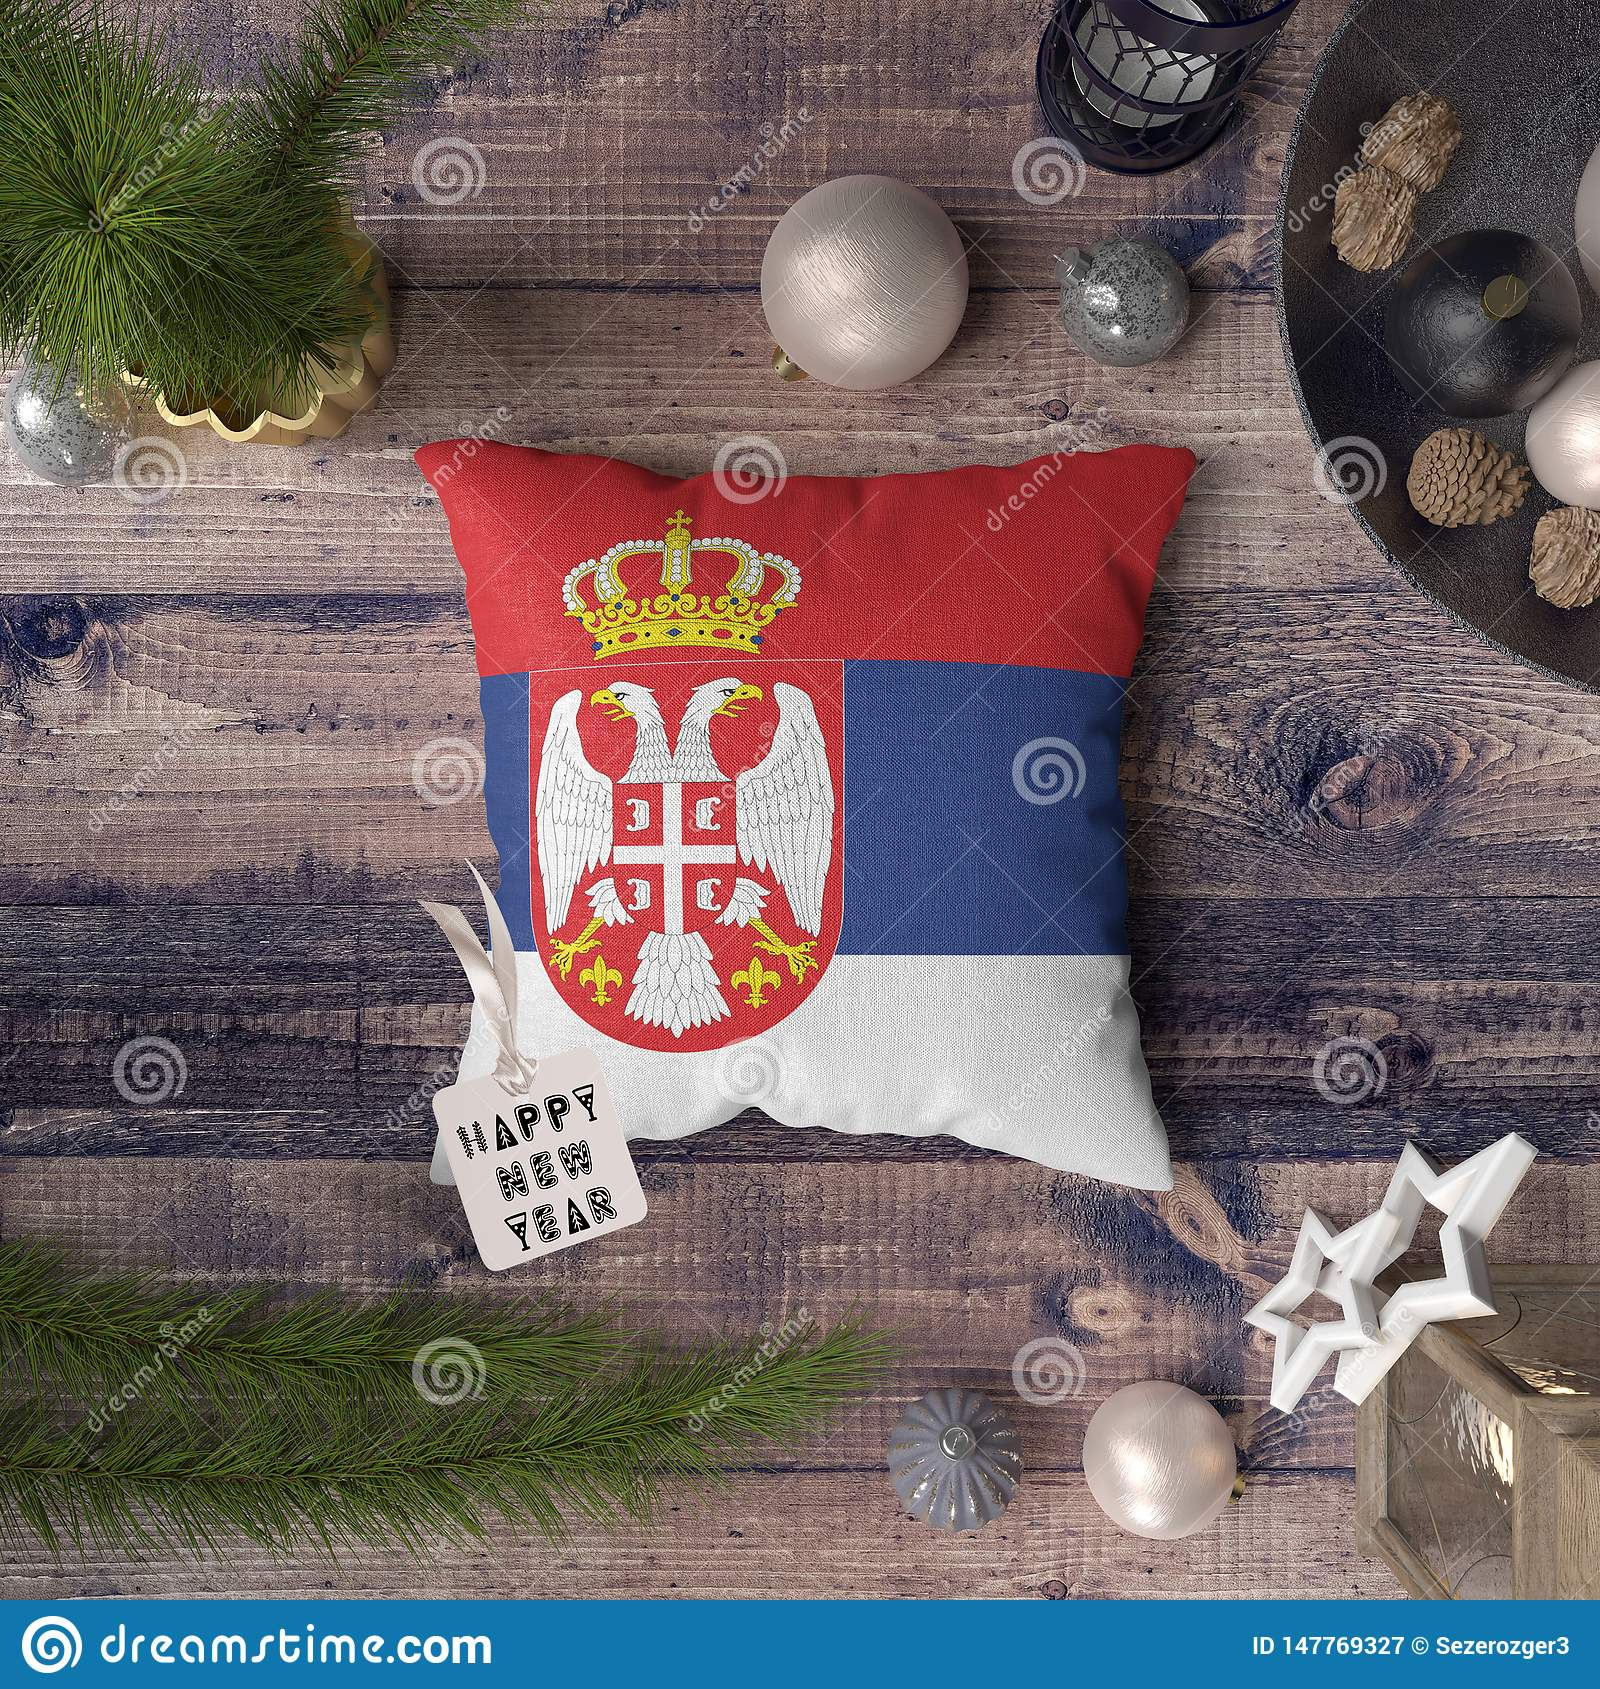 Happy New Year tag with Serbia flag on pillow. Christmas decoration concept on wooden table with lovely objects